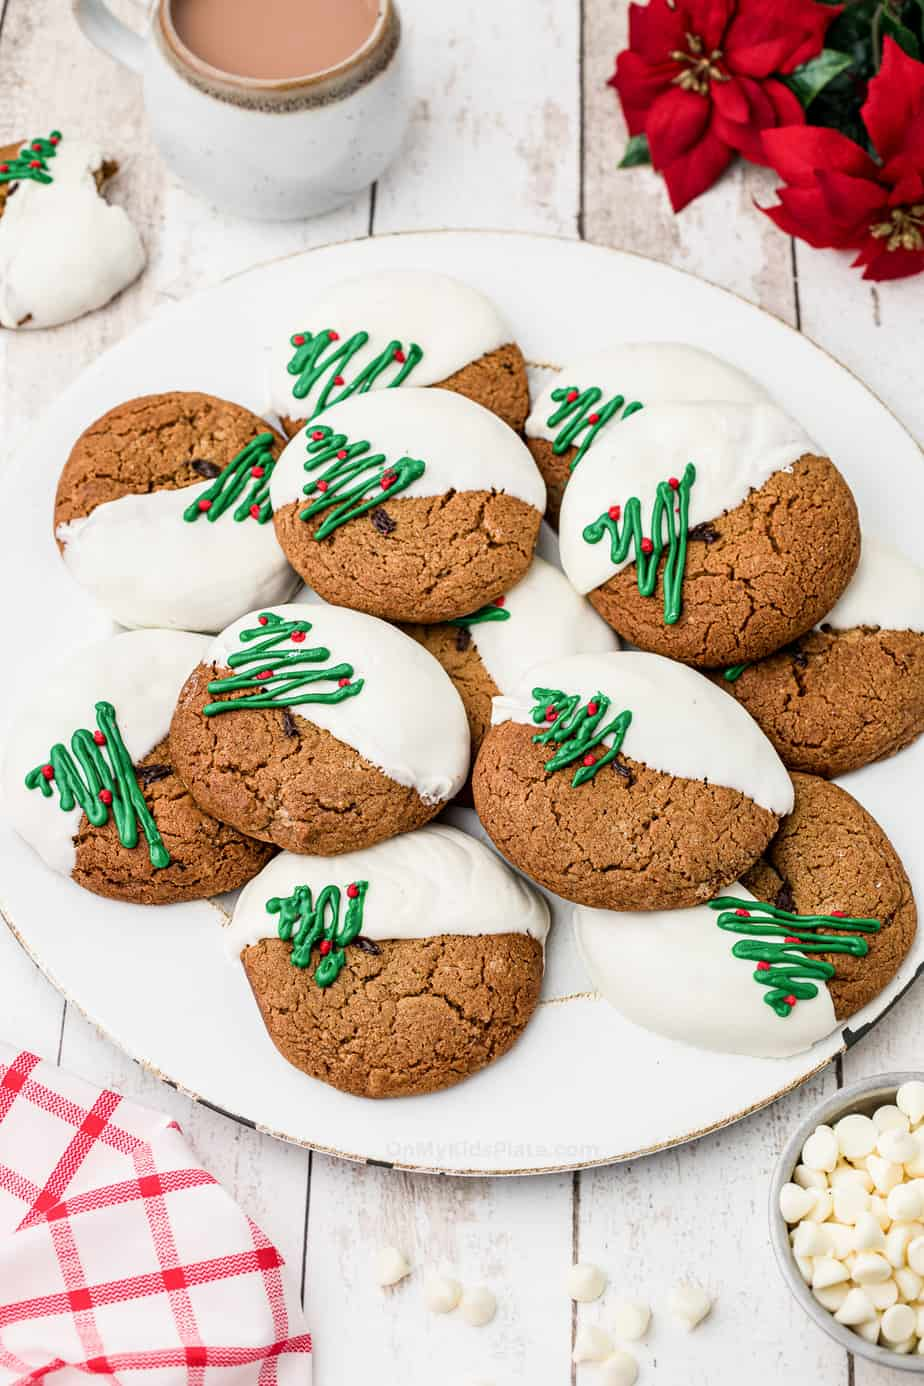 Plate of molasses cookies decorated dipped in white chocolate and decorated with Christmas trees.